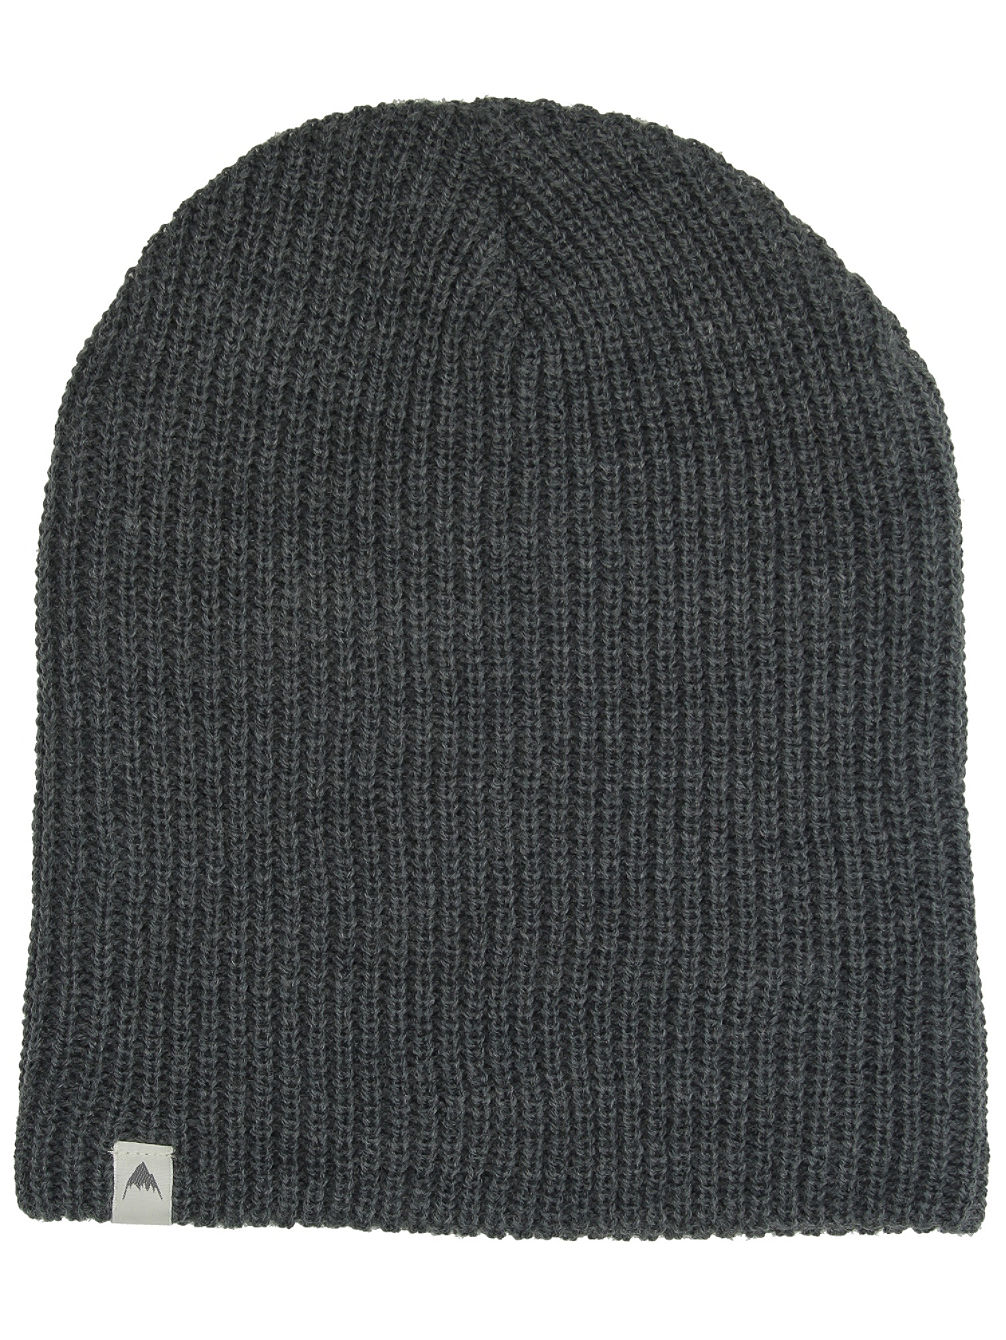 5cf098c4173 Buy Burton All Day Long Beanie online at Blue Tomato